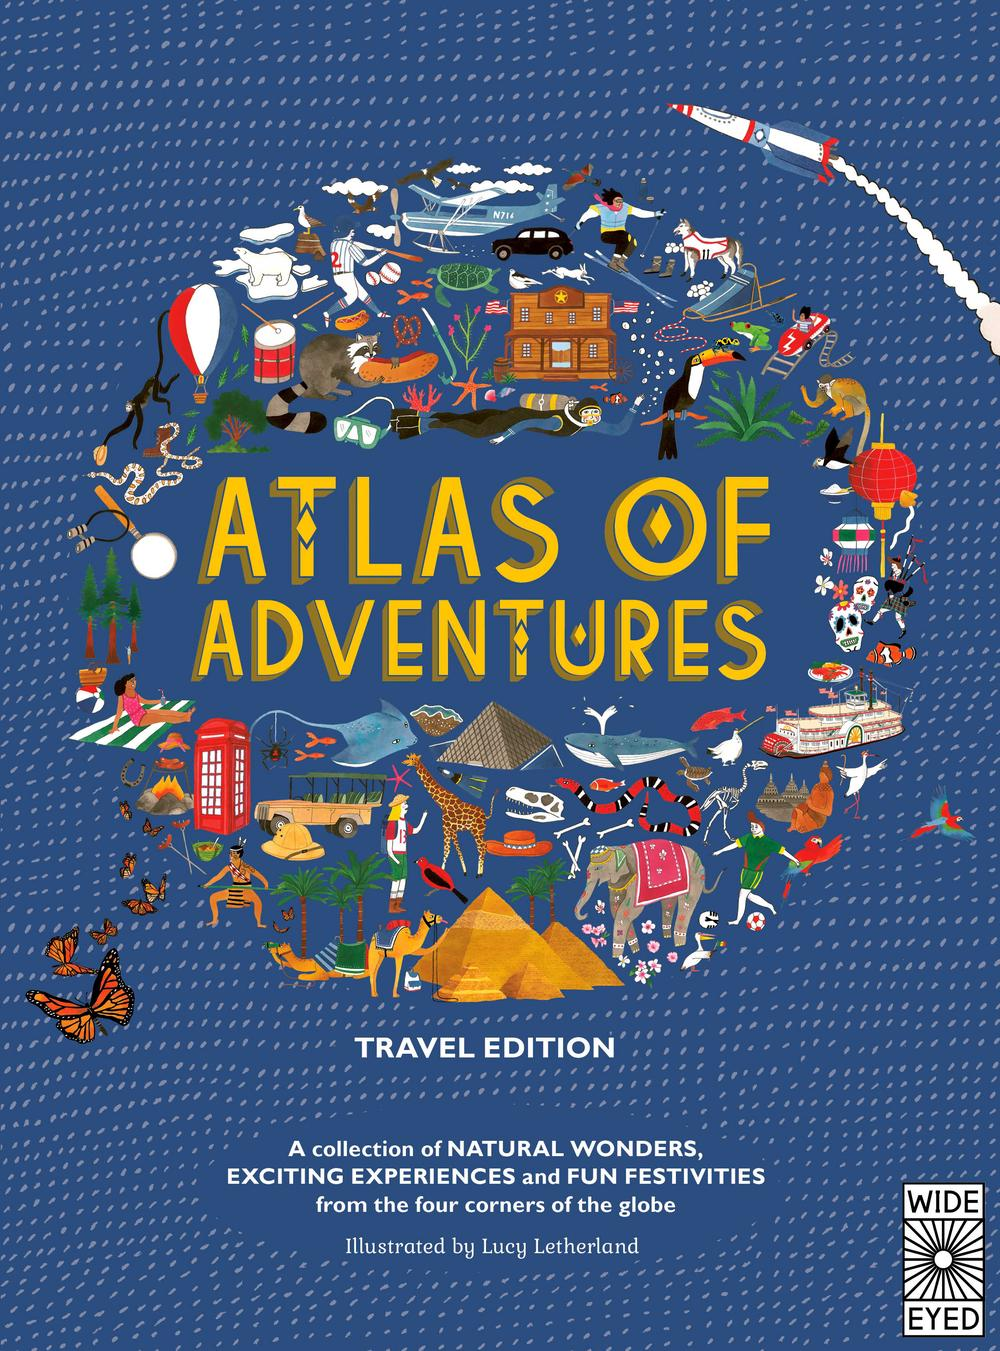 Atlas of Adventure Travel Edition